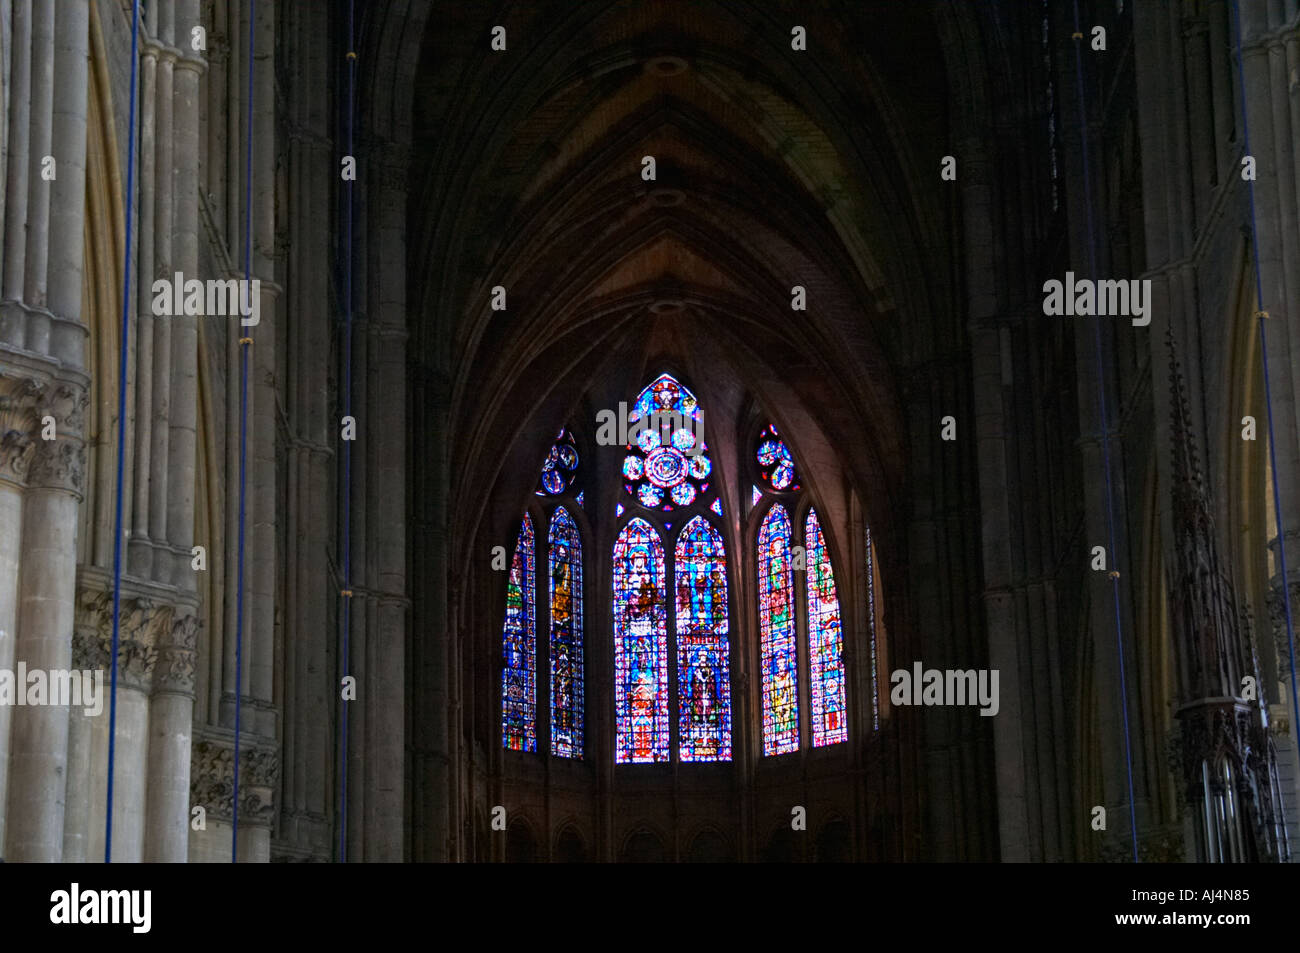 Reims Cathedral Stained Glass Windows